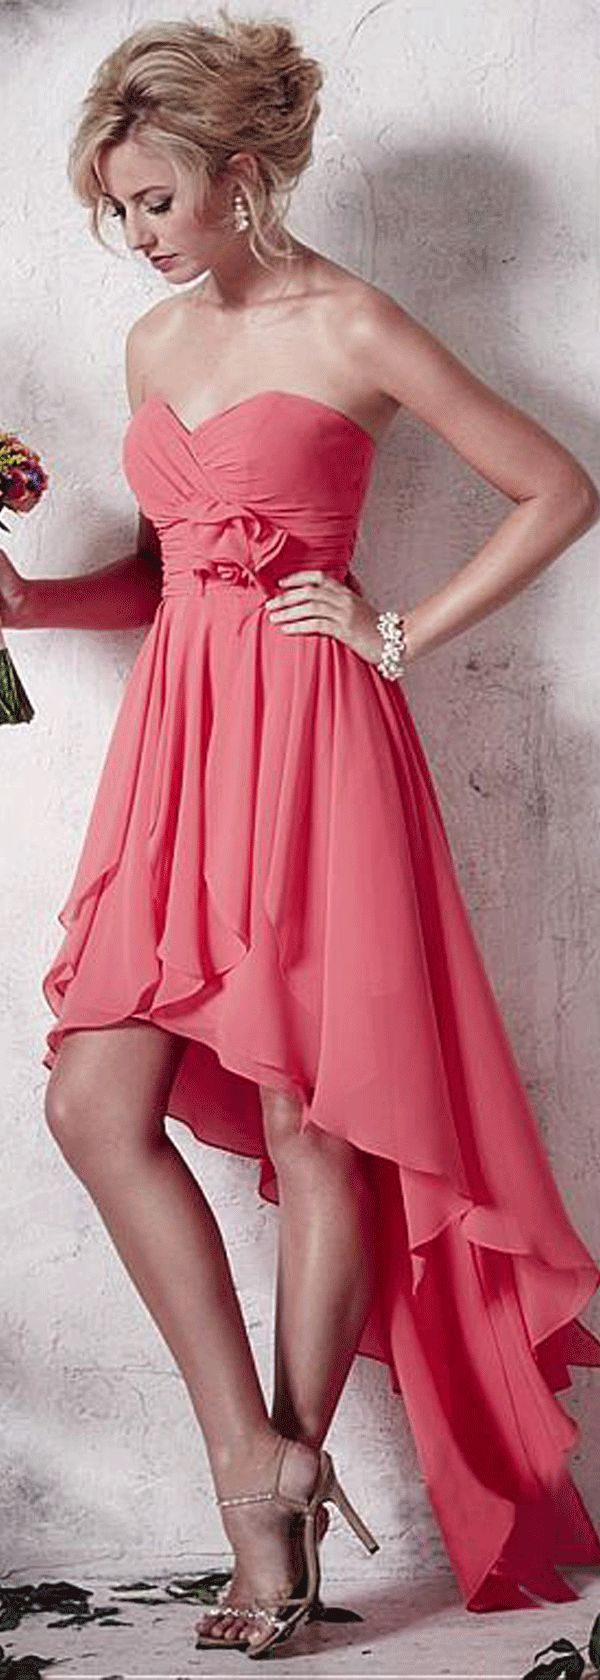 49 best J+V images on Pinterest | Casamento, Events and Bridesmaids